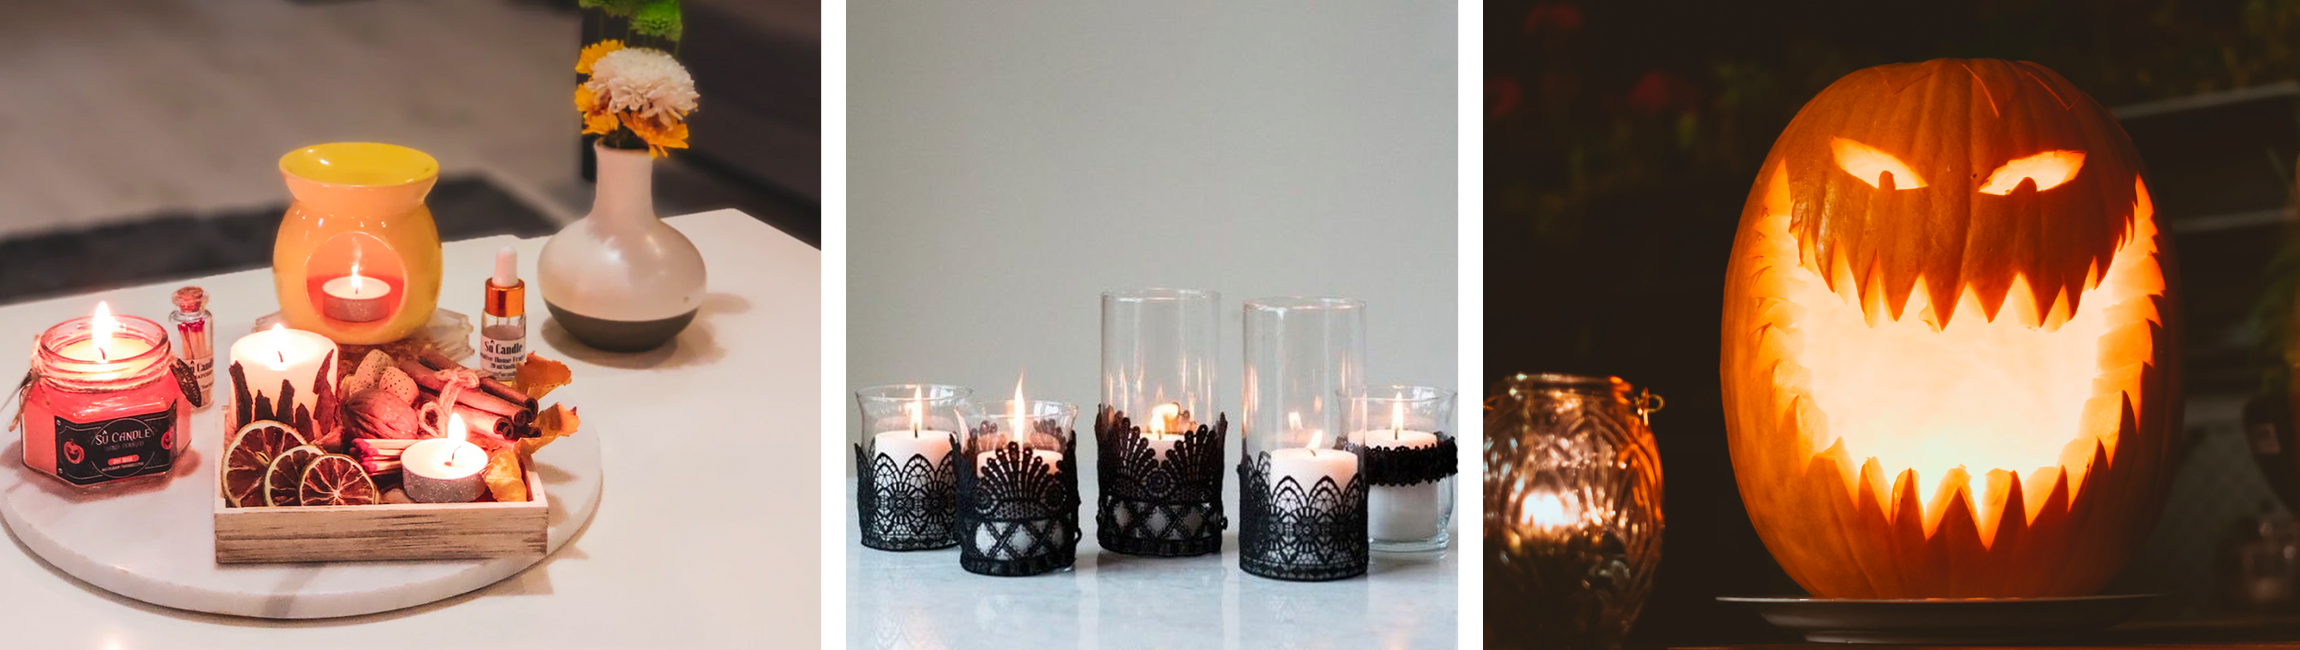 candle lace black halloween spooky freaky decorations centrepieces